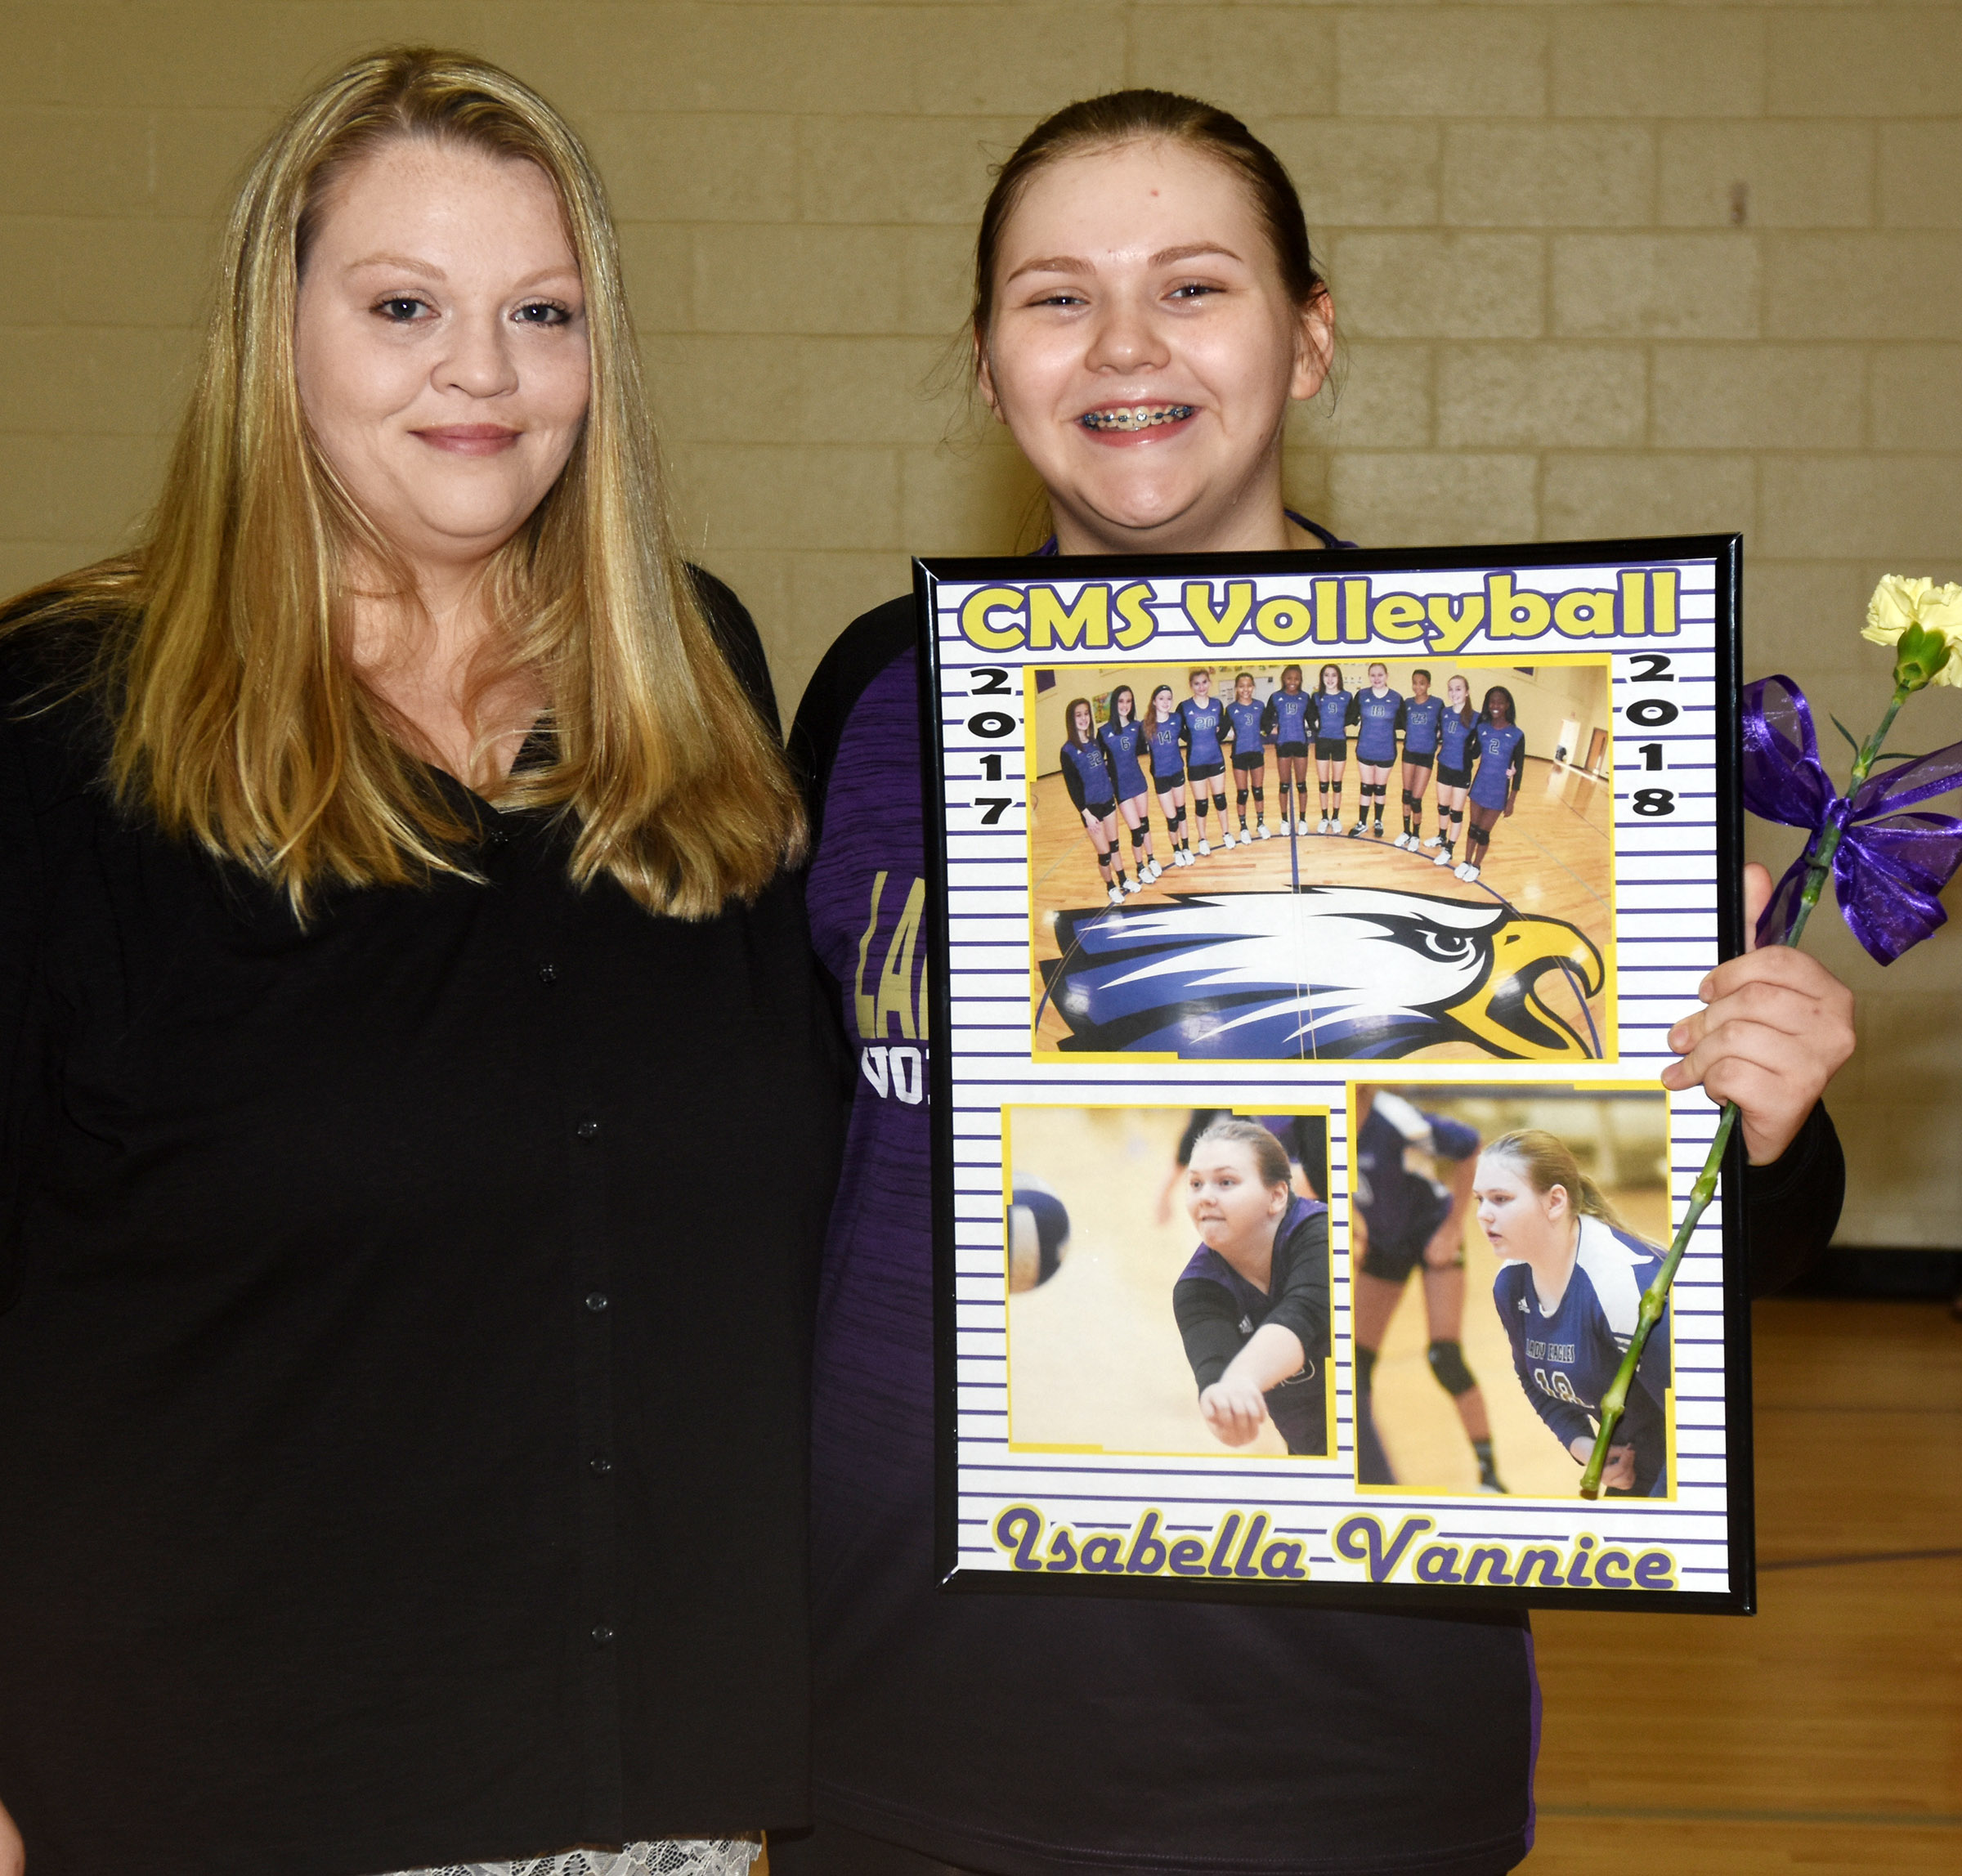 CMS eighth-grader Isabella Vannice is honored for her dedication and hard work this season. She is pictured with her mother, Debra.